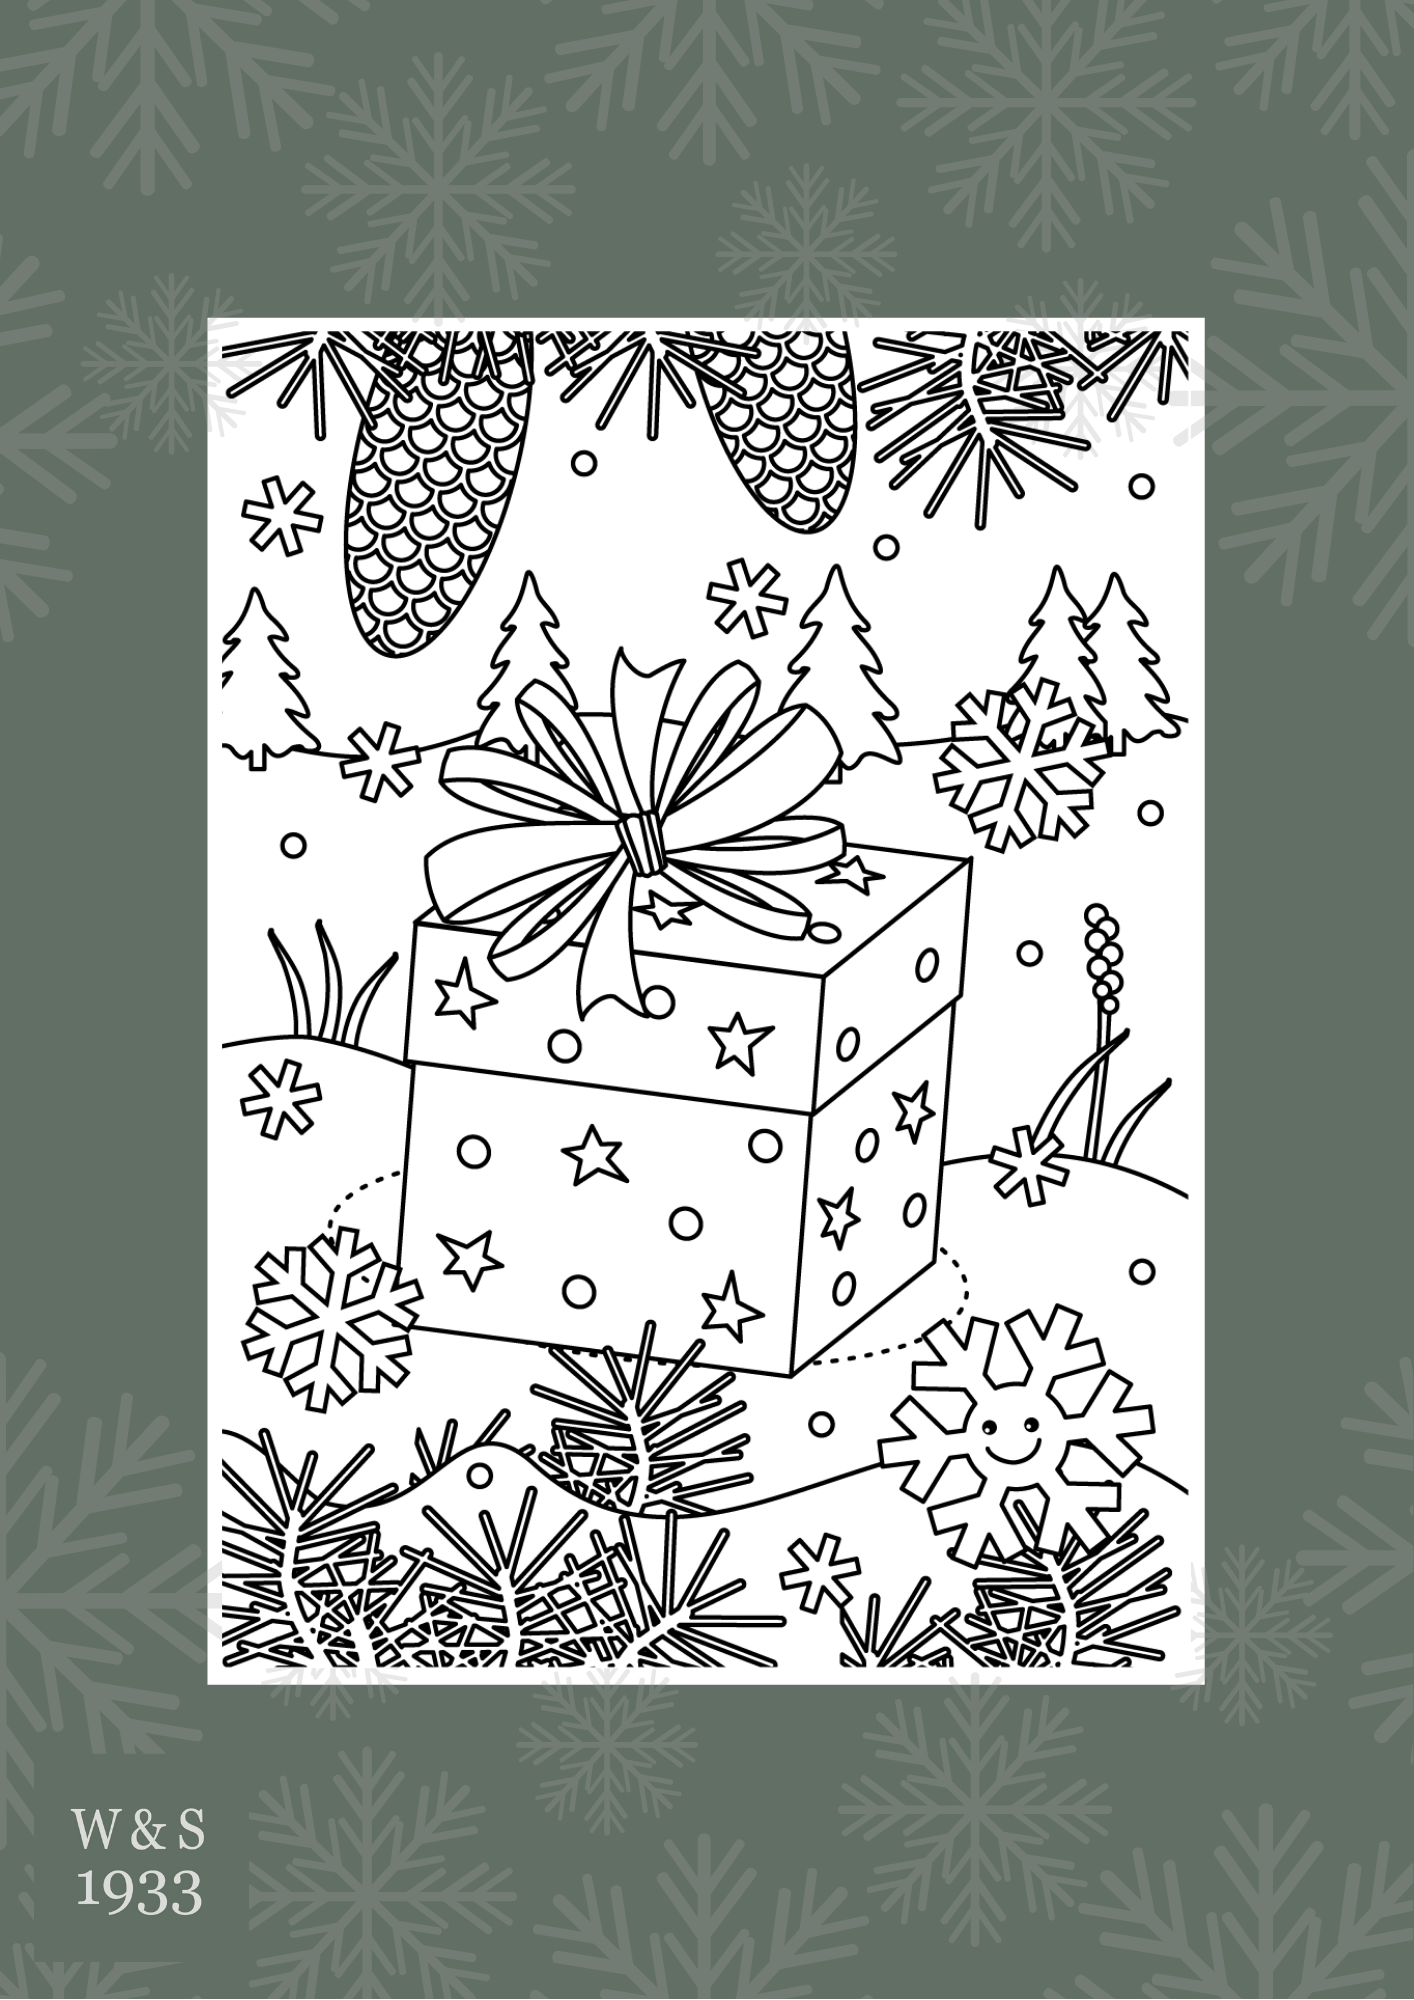 Wills & Smerdon Christmas colouring page 1